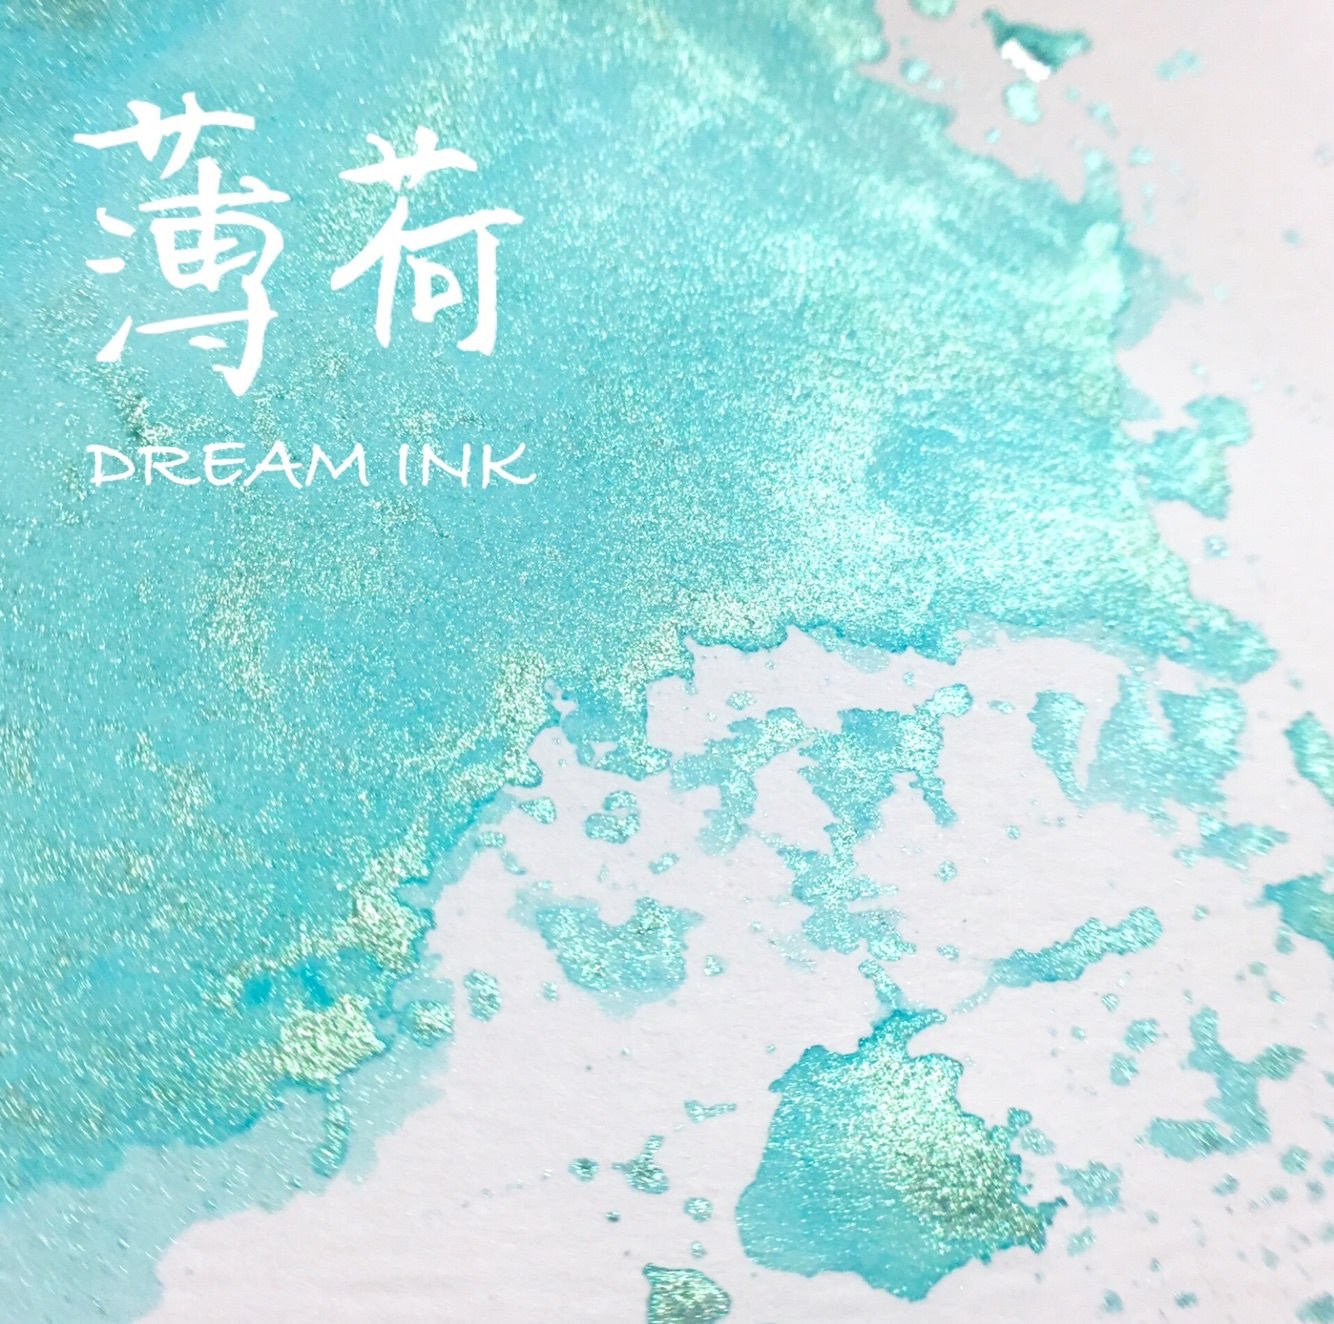 dream ink peppermint.jpg